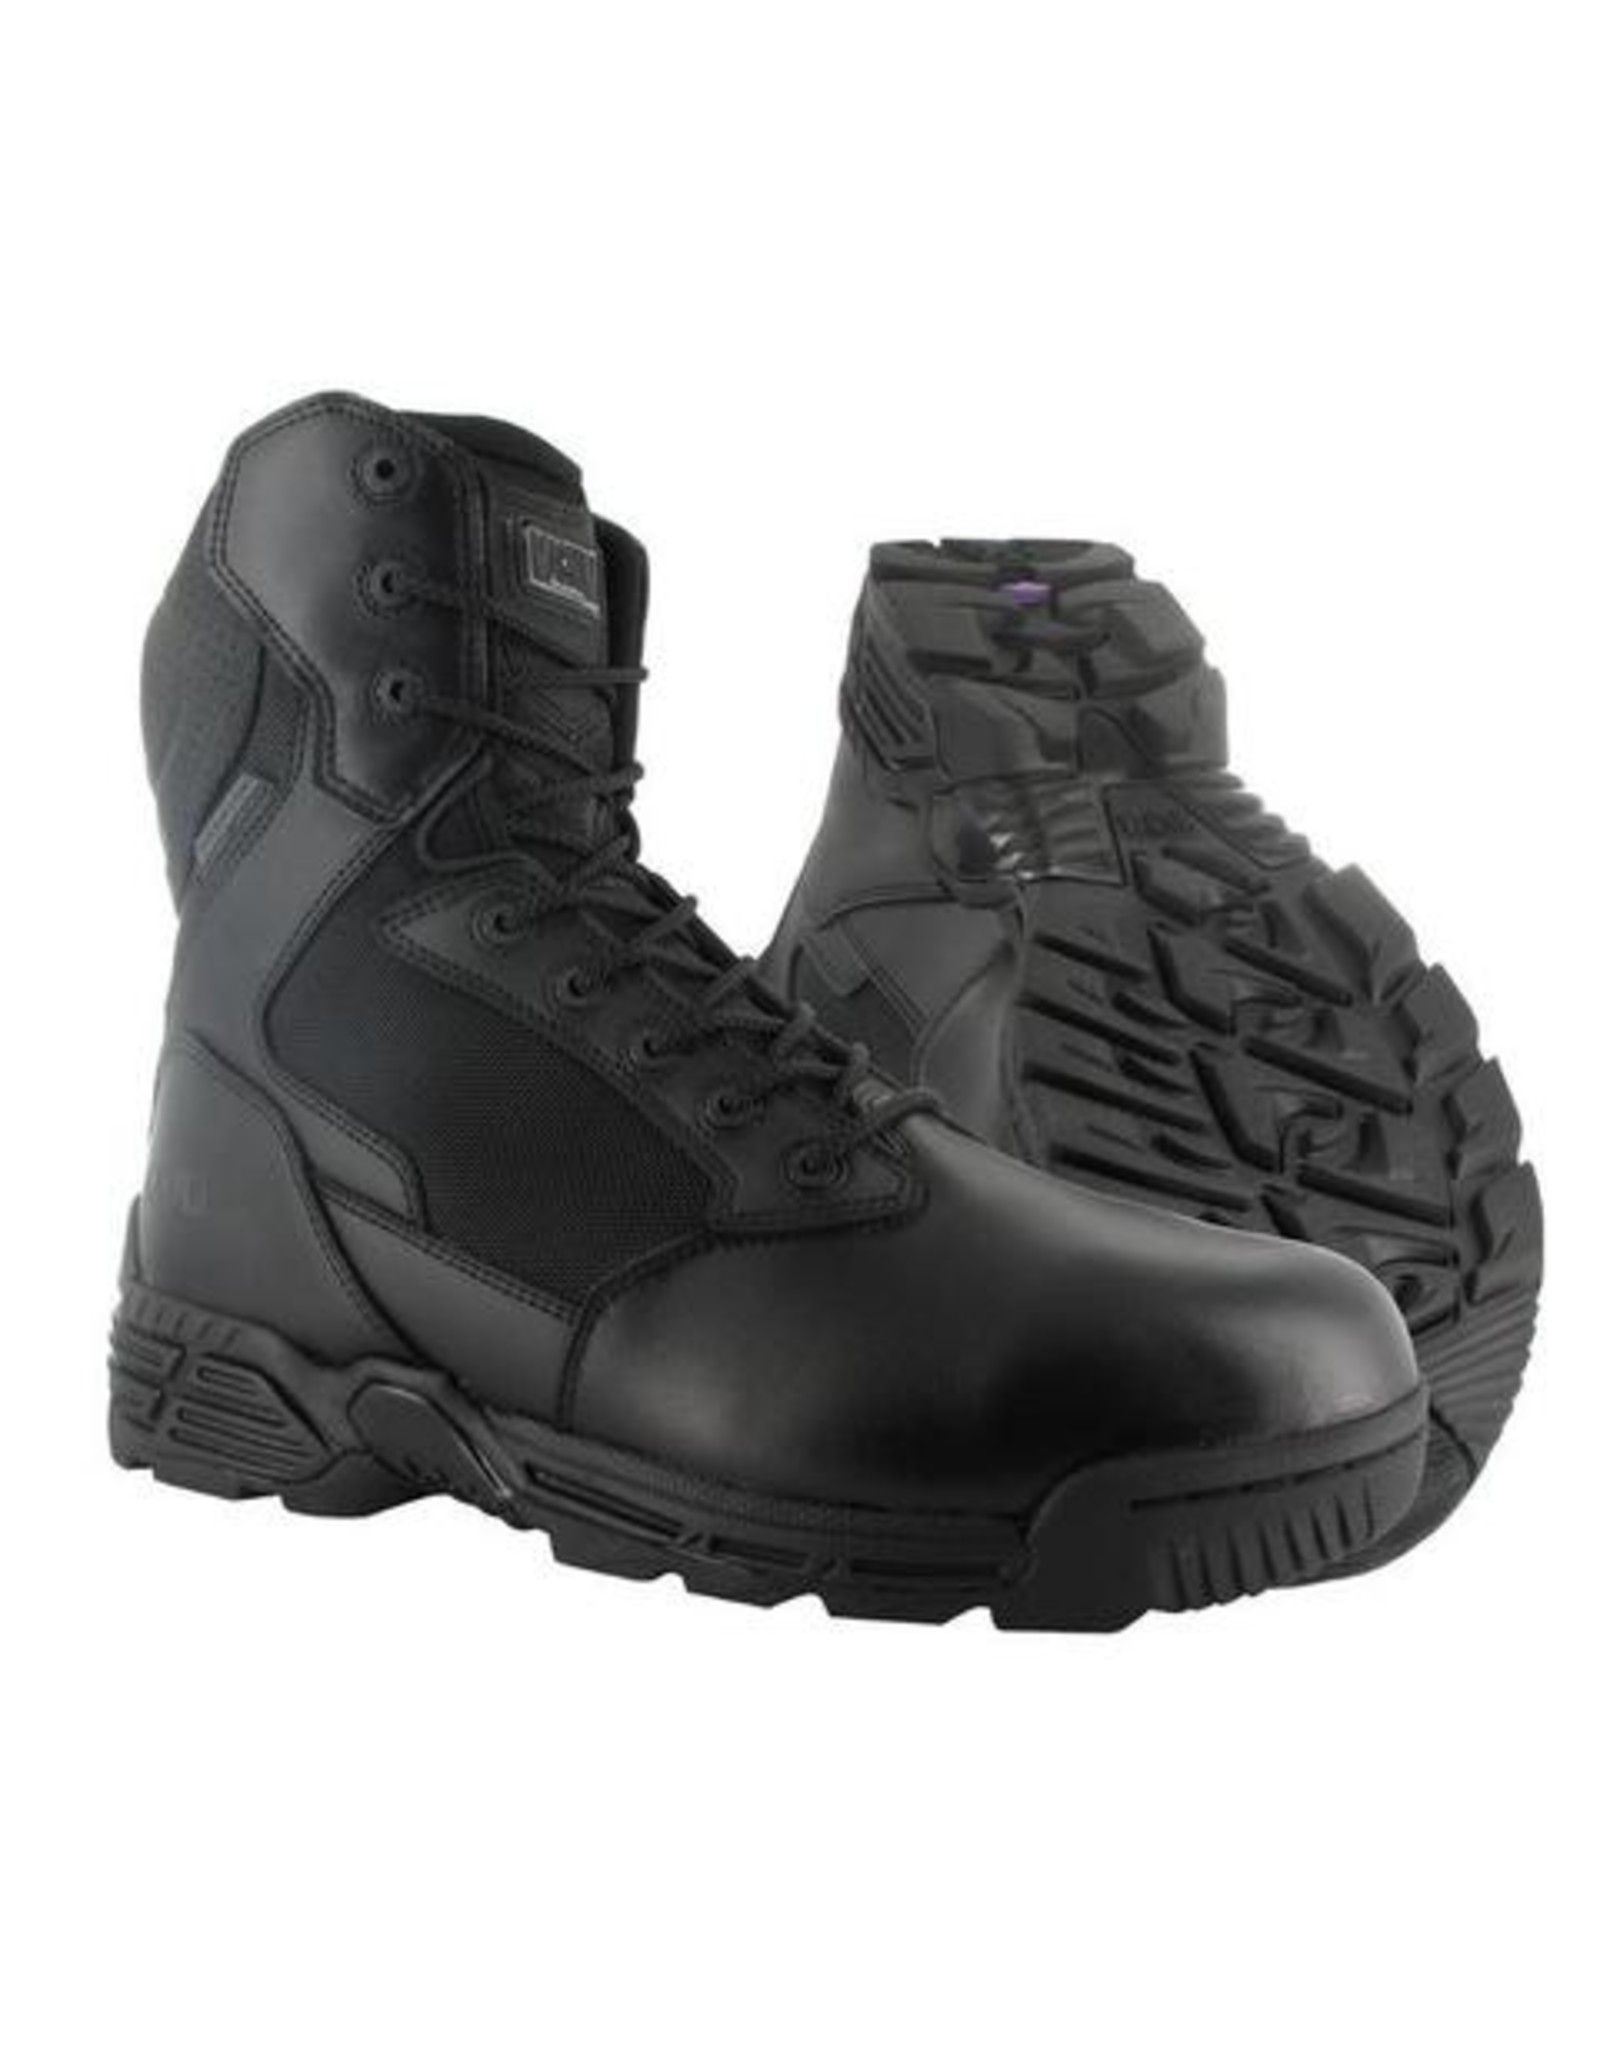 MAGNUM BOOTS STEALTH FORCE 8.0 INSULATED WP